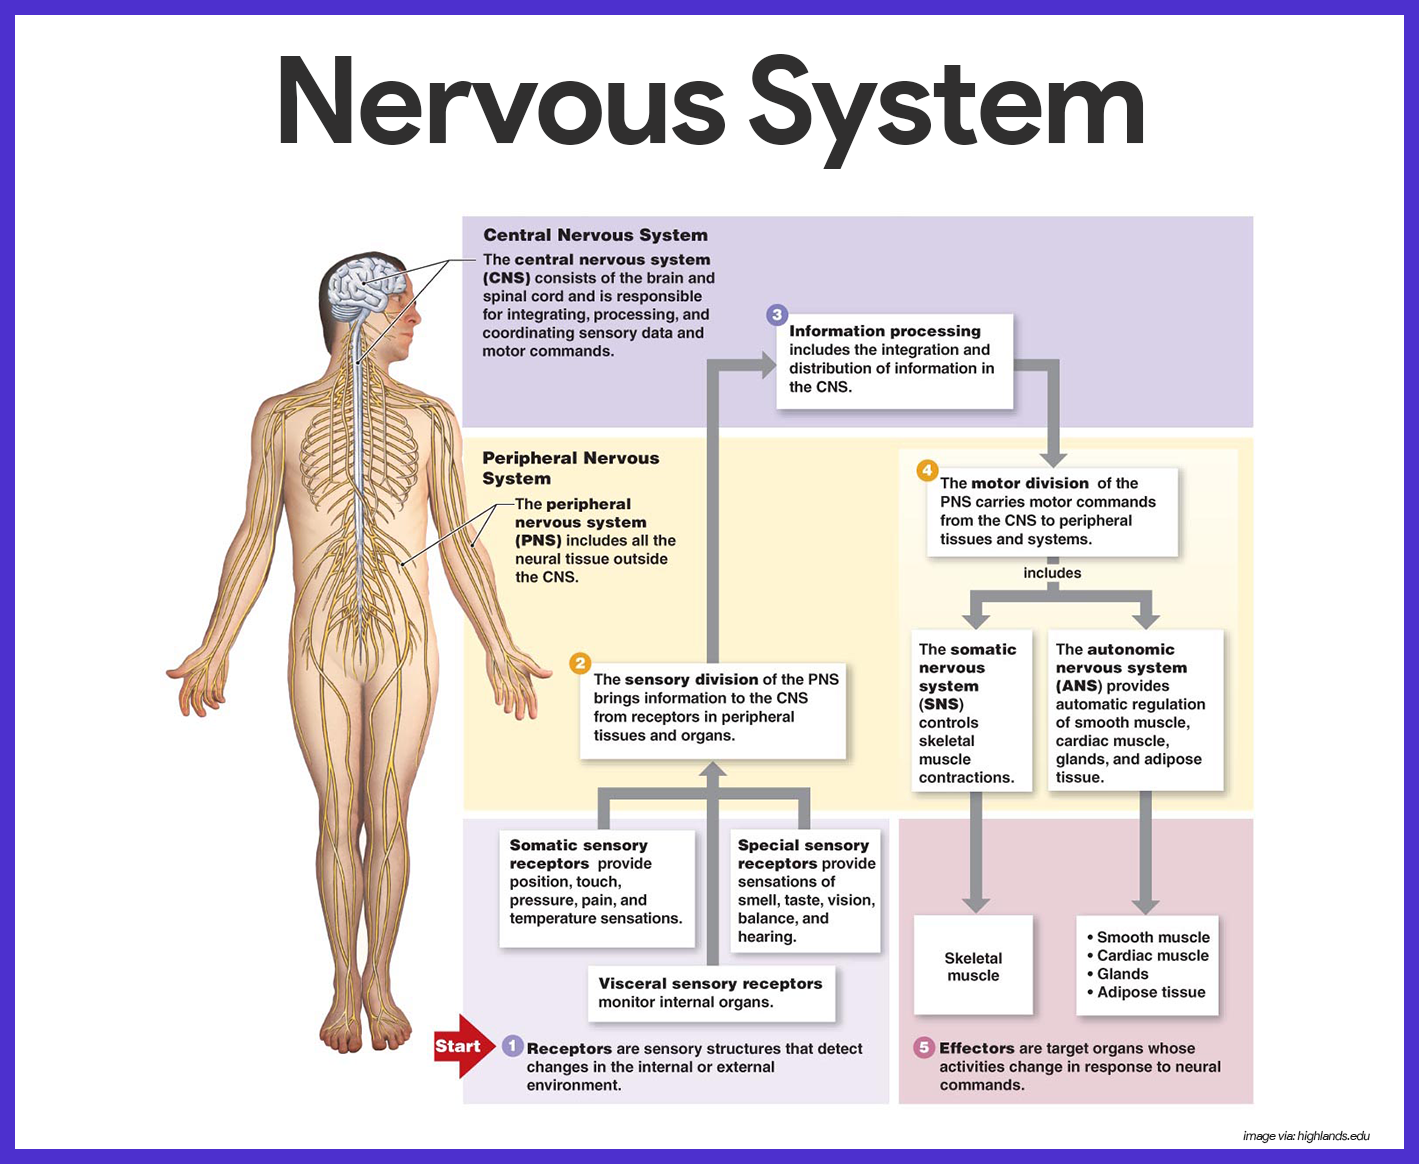 Nervous System Anatomy and Physiology | Nursing | Pinterest ...